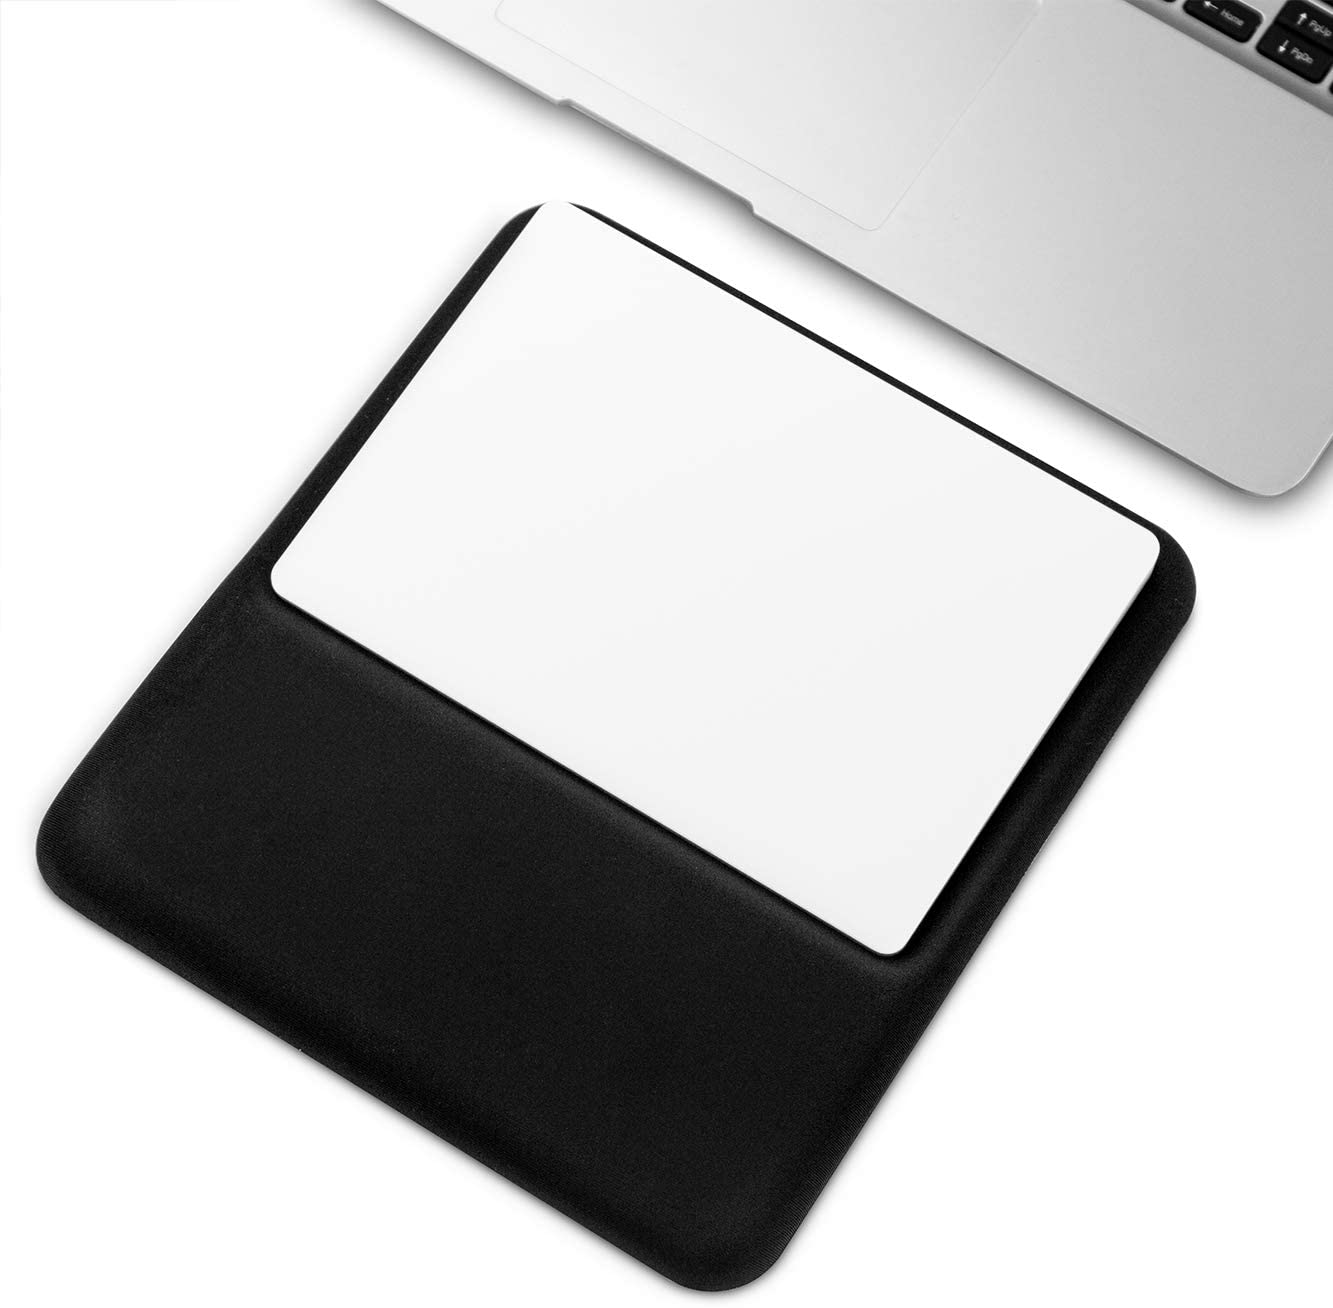 Slim Ergonomic Wrist Rest for Magic Trackpad (Black